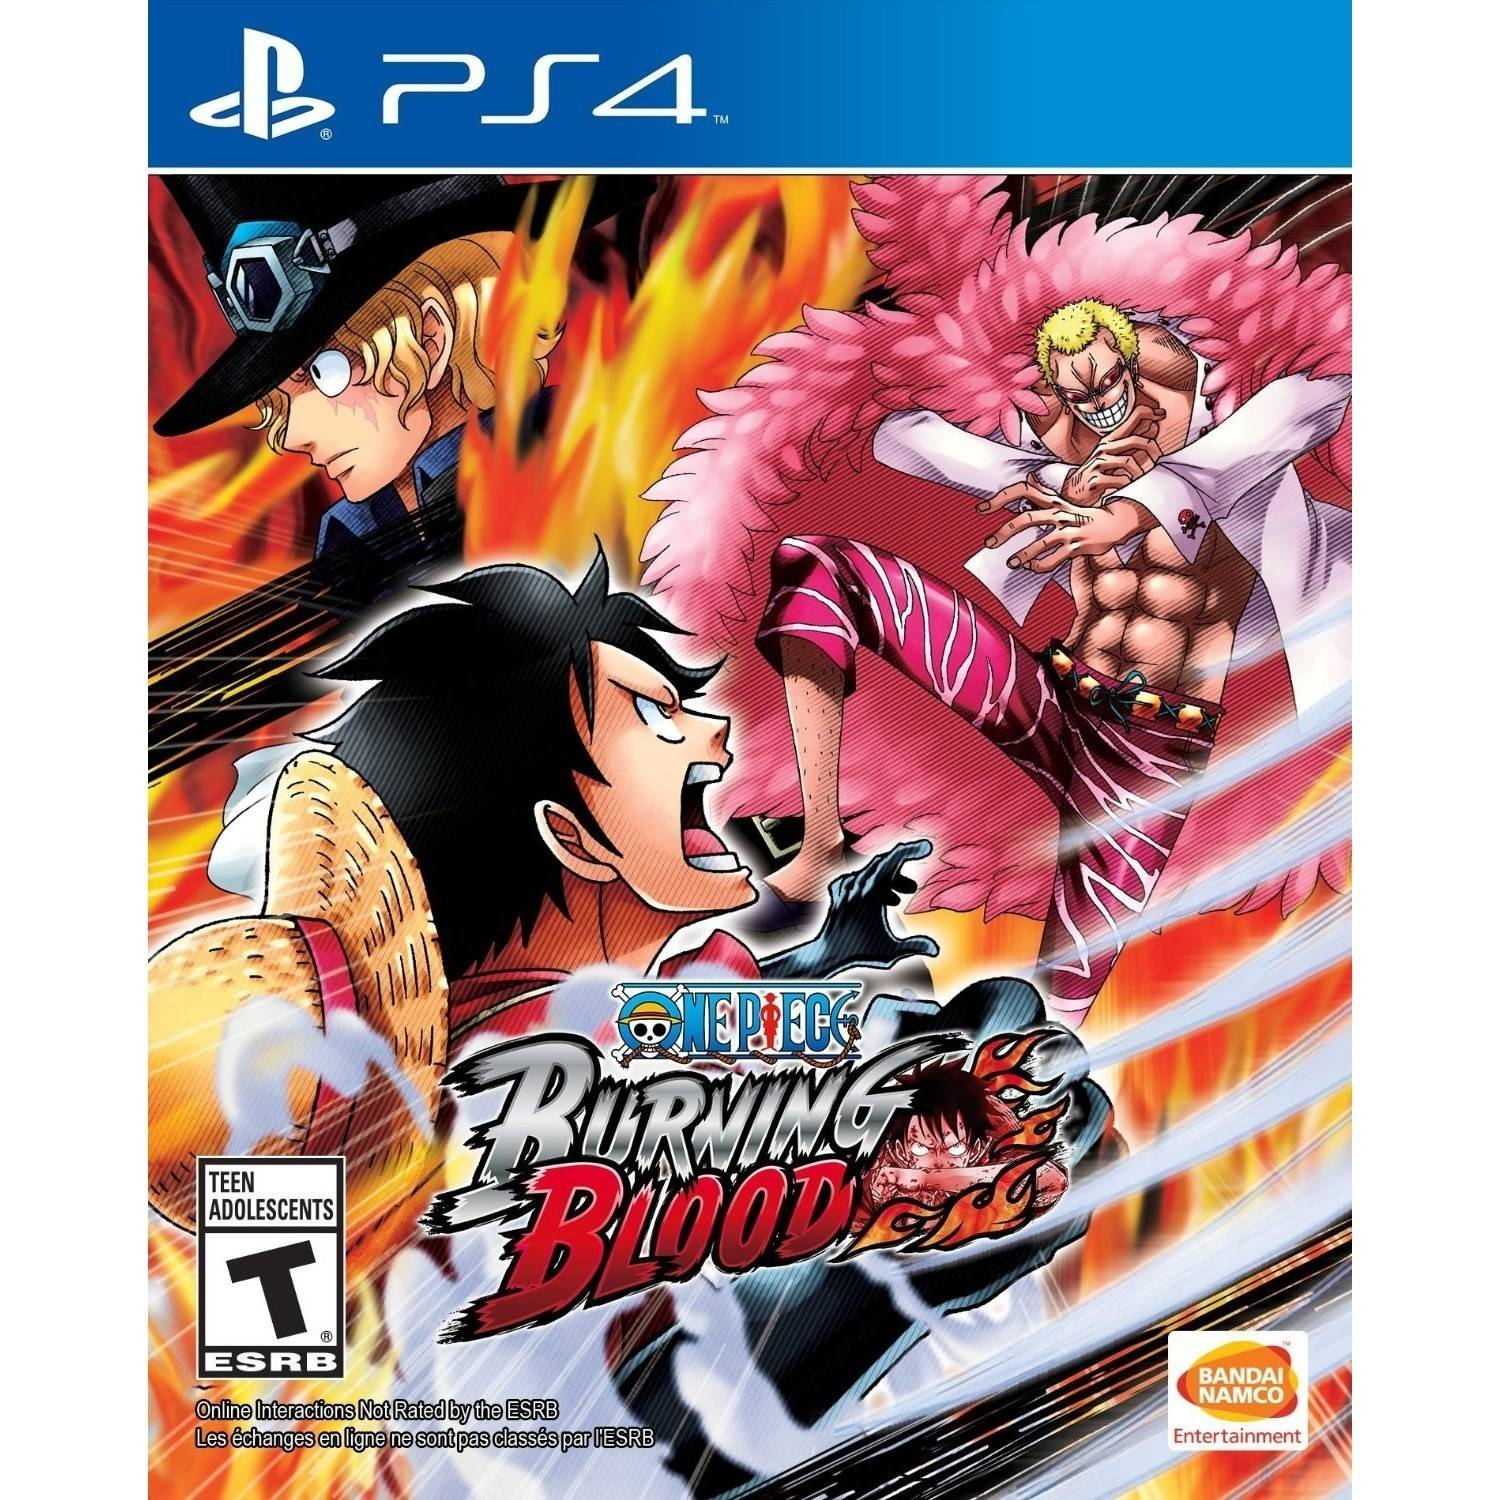 Bandai Namco ONE PIECE Burning Blood, Bandai/Namco, PlayStation 4, 722674120135